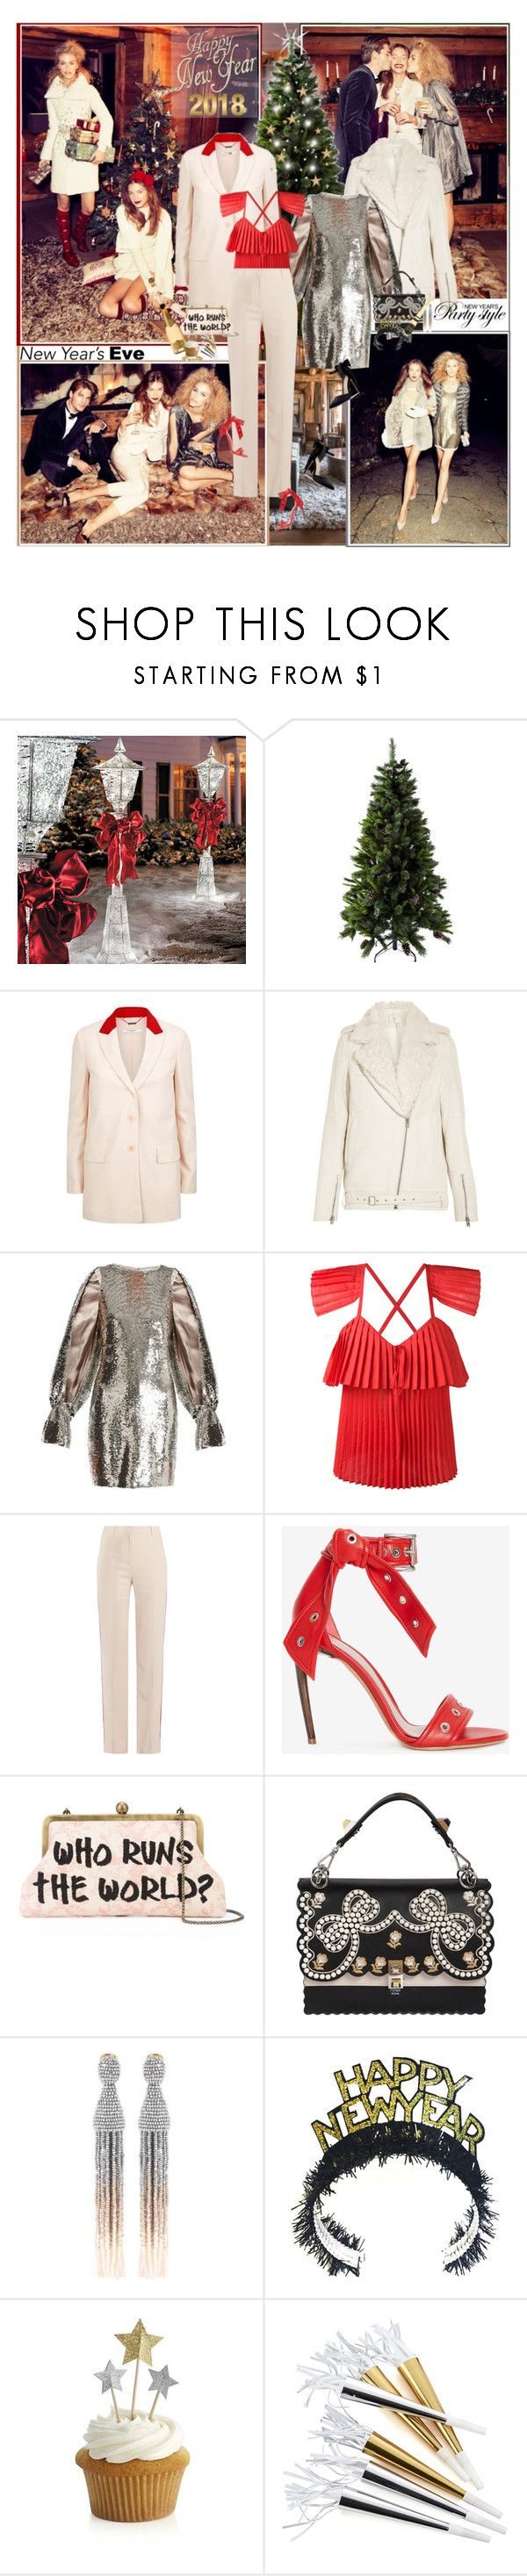 """""""Hold on to the memories, they will hold on to you..."""" by thisiswhoireallyam7 ❤ liked on Polyvore featuring Improvements, Givenchy, IRO, Osman, Rosie Assoulin, Alexander McQueen, Sarah's Bag, Fendi, Oscar de la Renta and Crate and Barrel"""